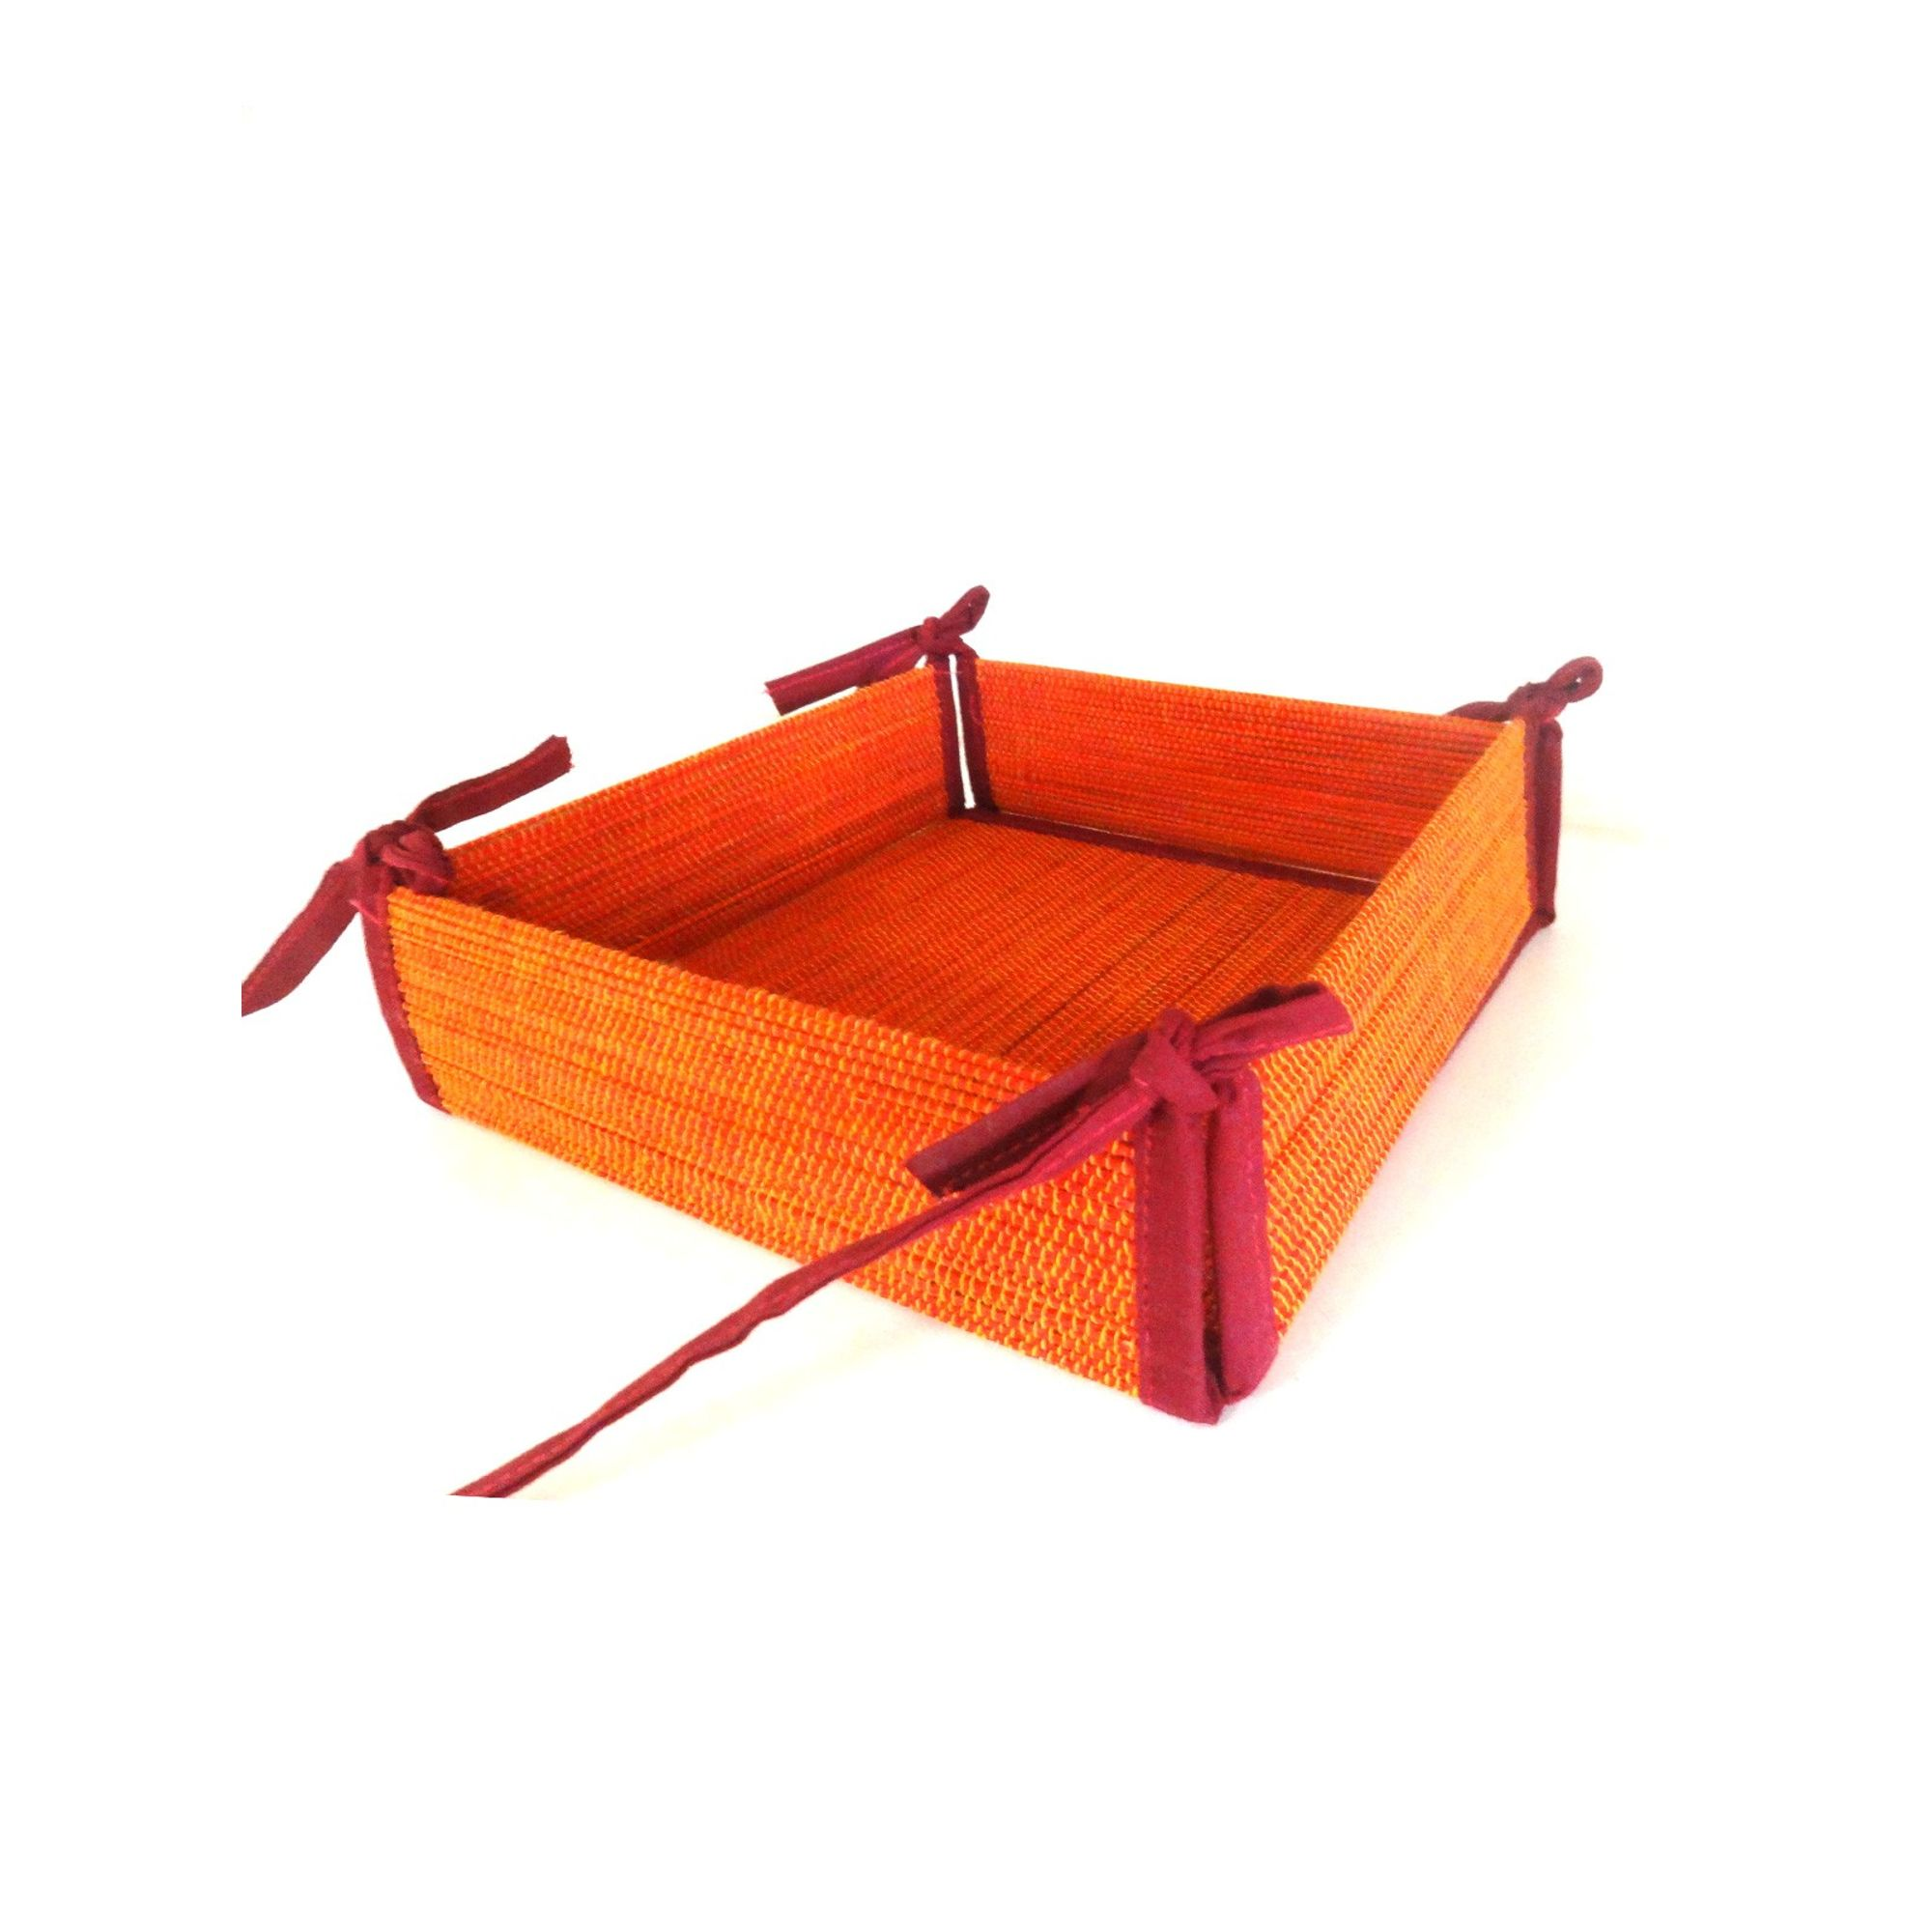 Foldable Utility Tray